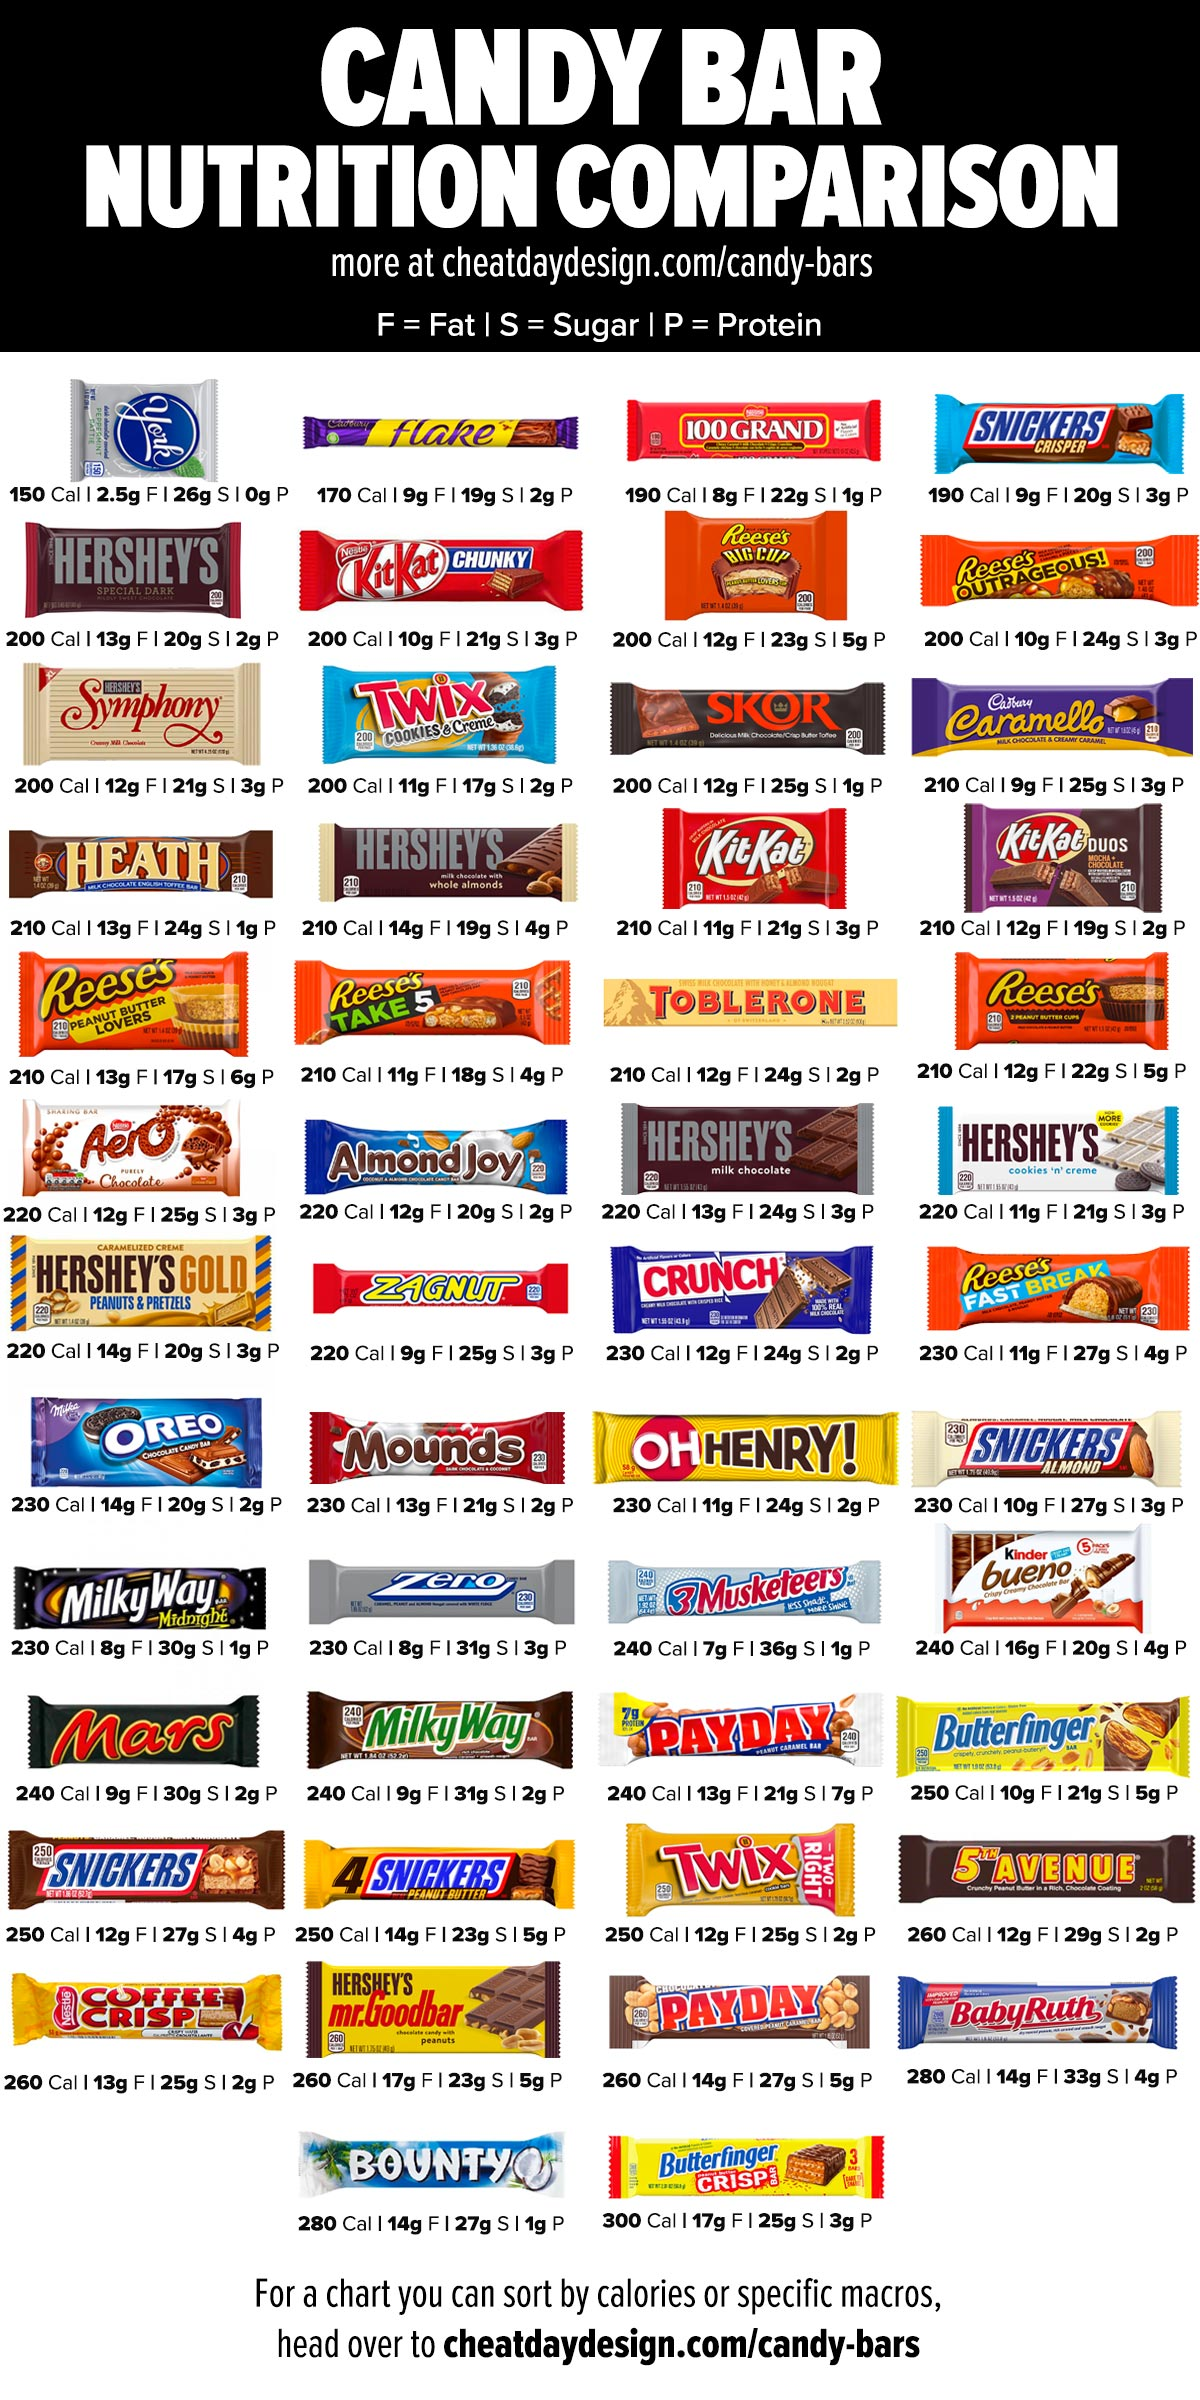 Candy Bar Nutrition Comparison- Which candy bar is the healthiest?